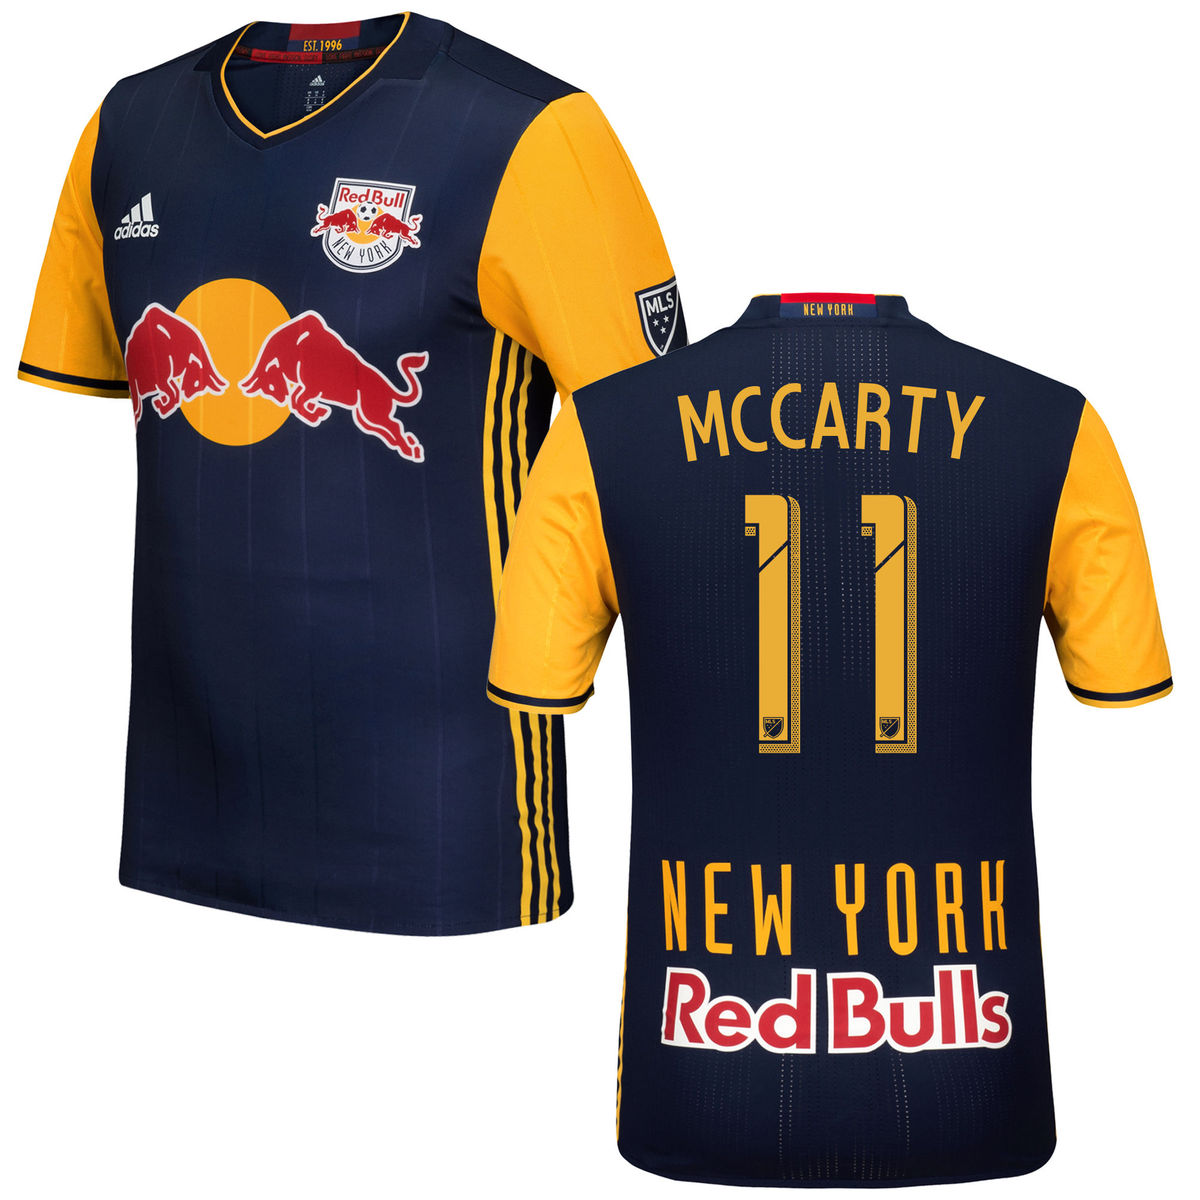 6e7d2b812 Click to enlarge image new-york-red-bulls-2016-adidas- ...